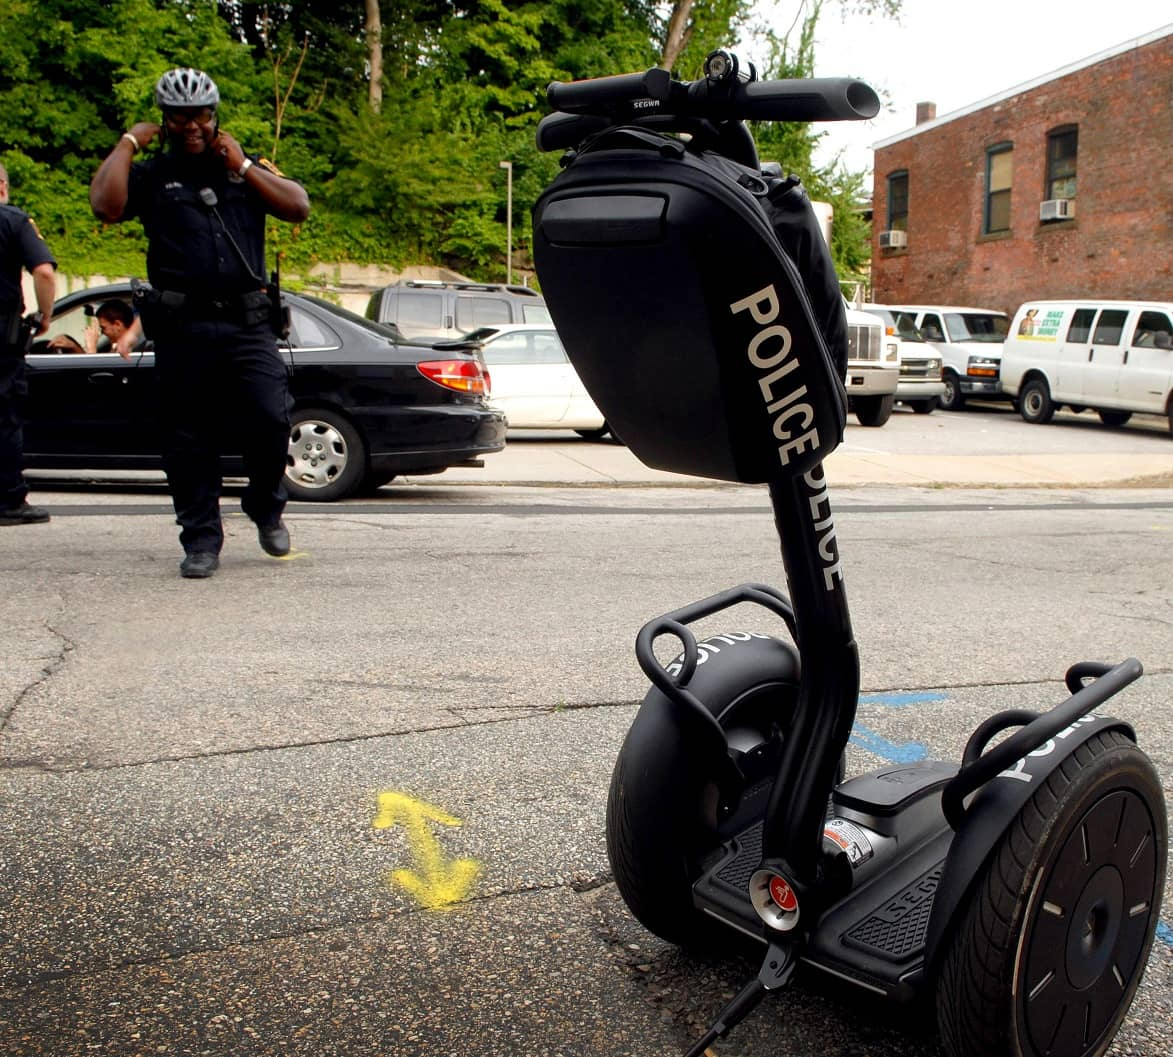 SEGWAY, POPULAR WITH POLICE BUT NOT THE PUBLIC, HITS BRAKES